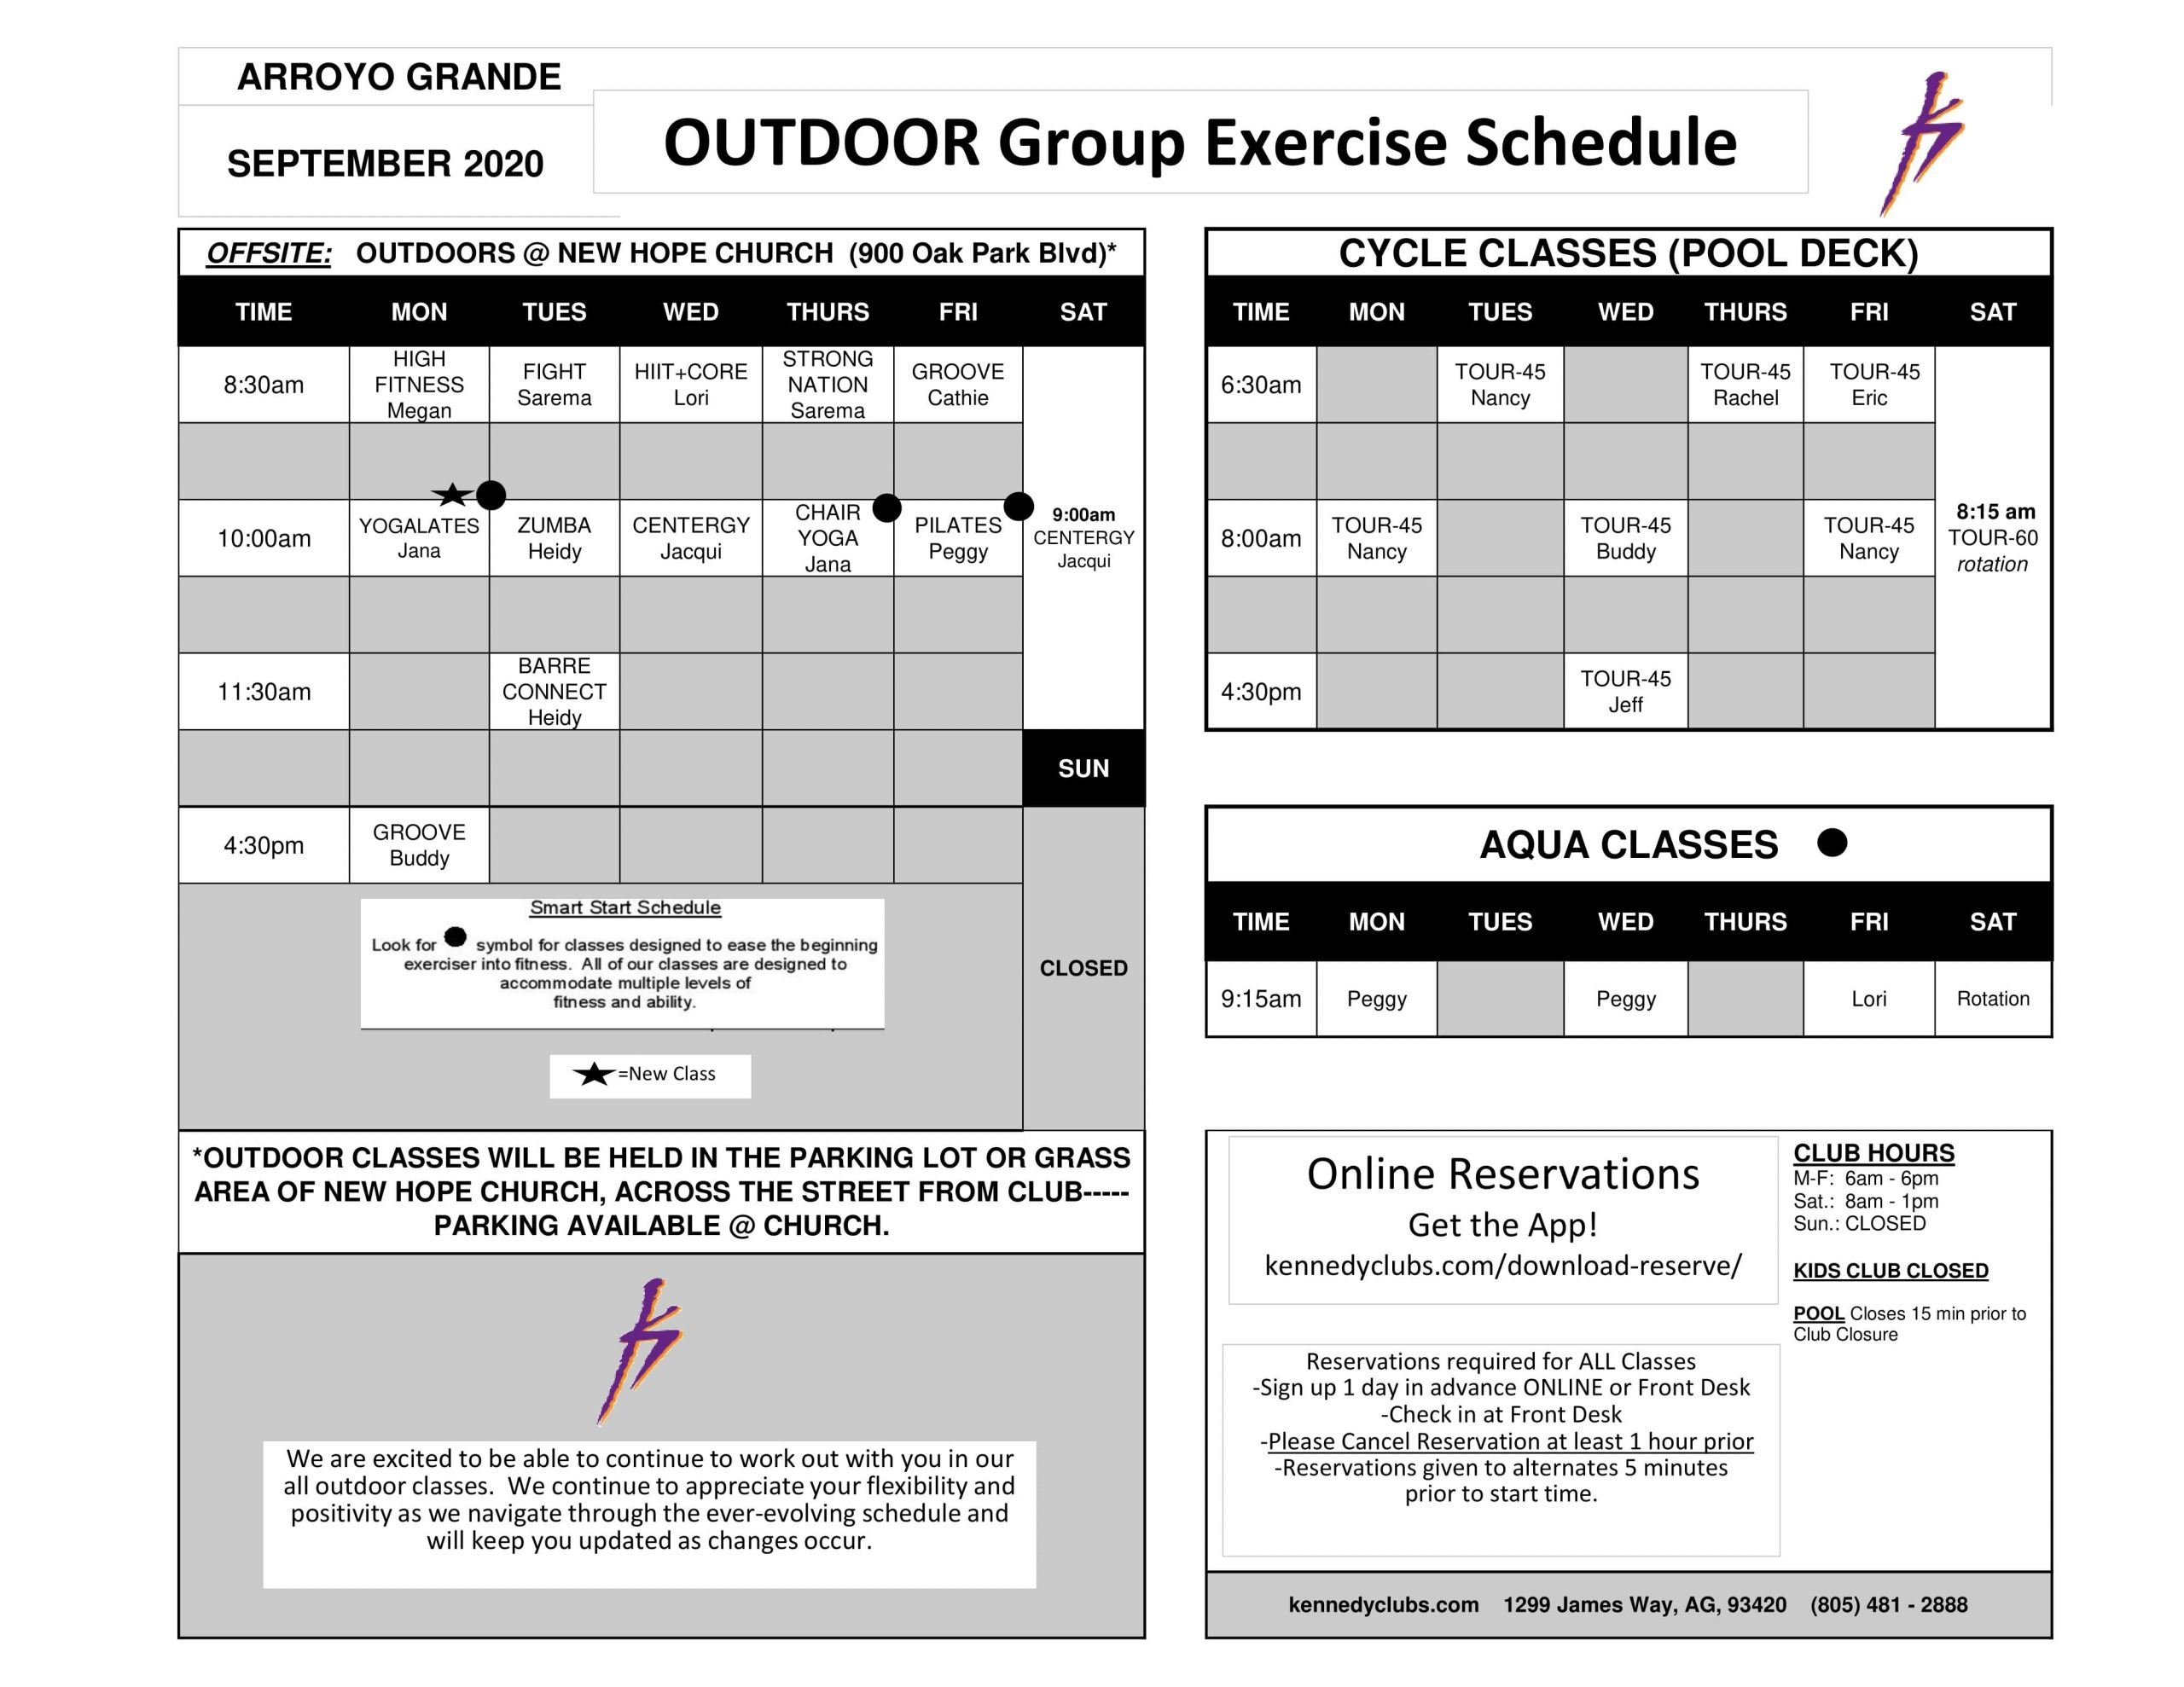 Kennedy Club Fitness Arroyo Grande Outdoor Group Exercise Schedule 09 09 2020